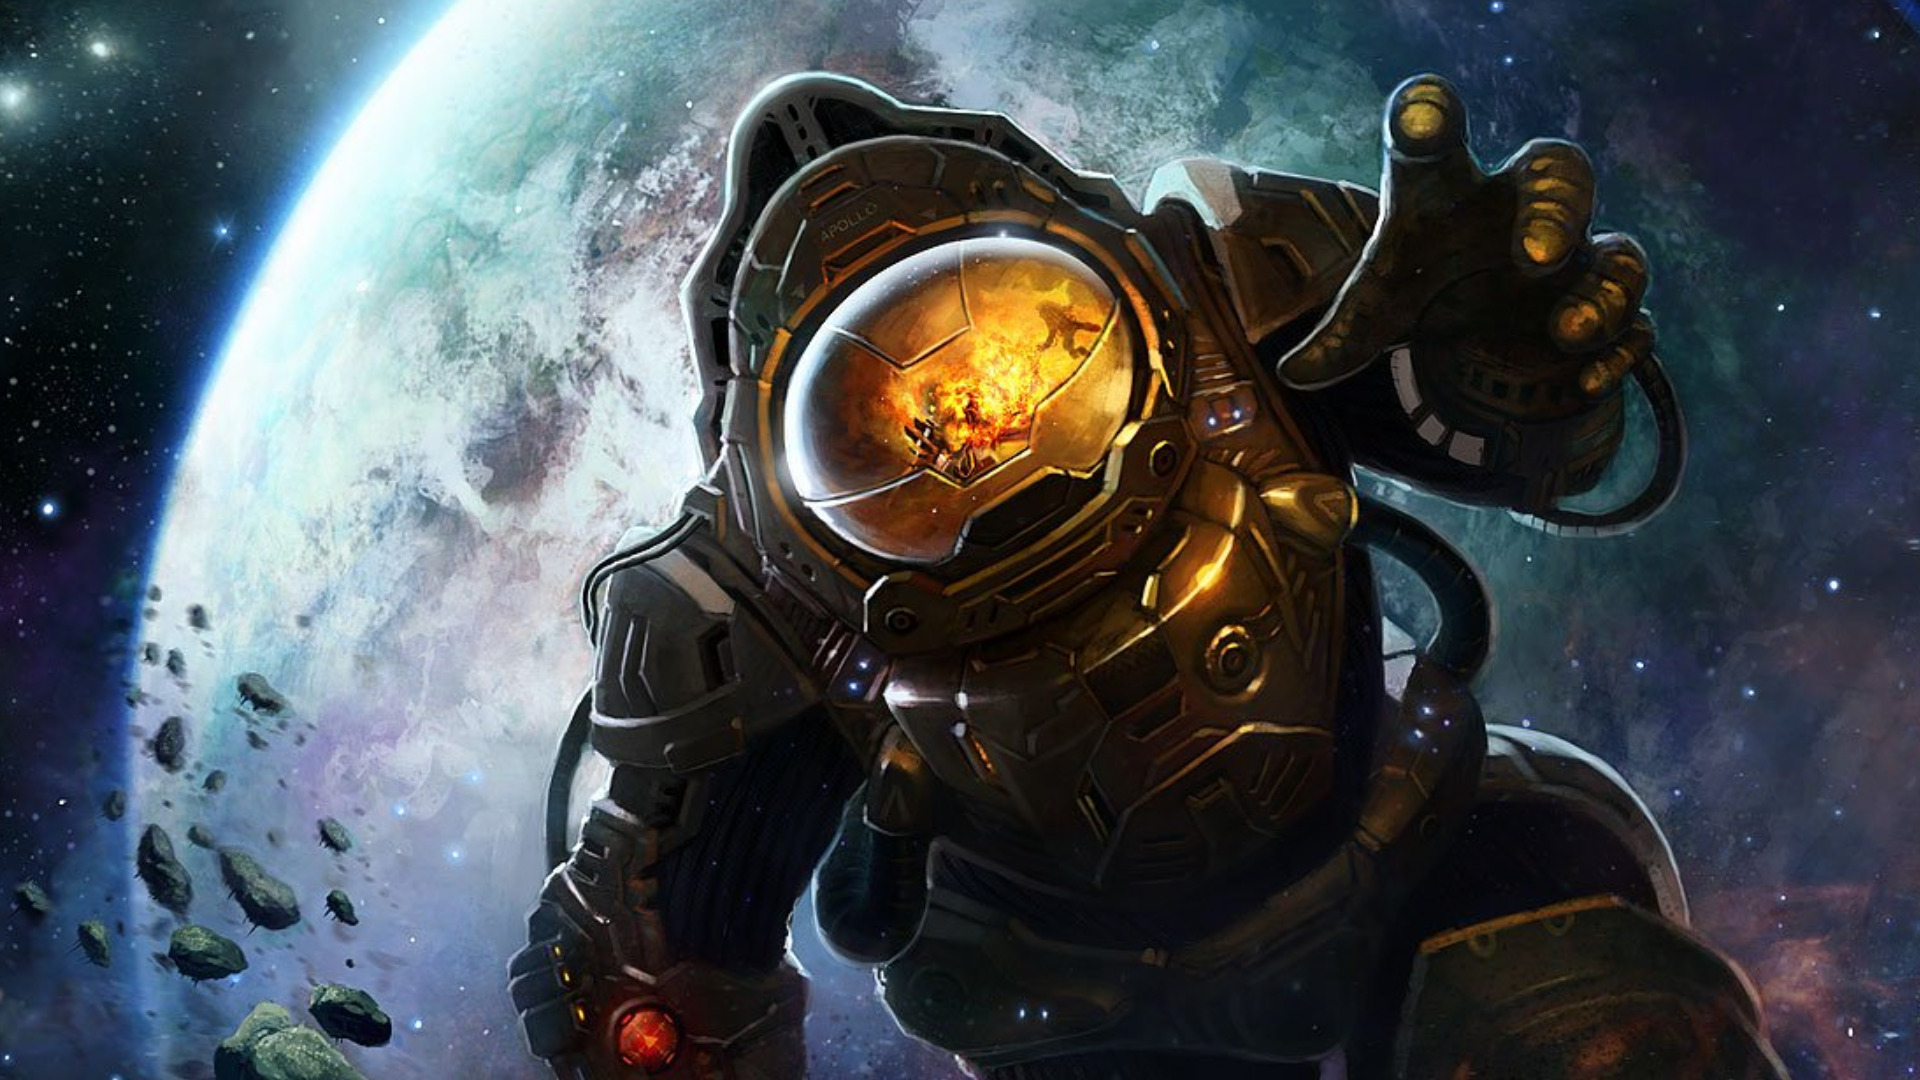 cool astronaut in space - photo #8